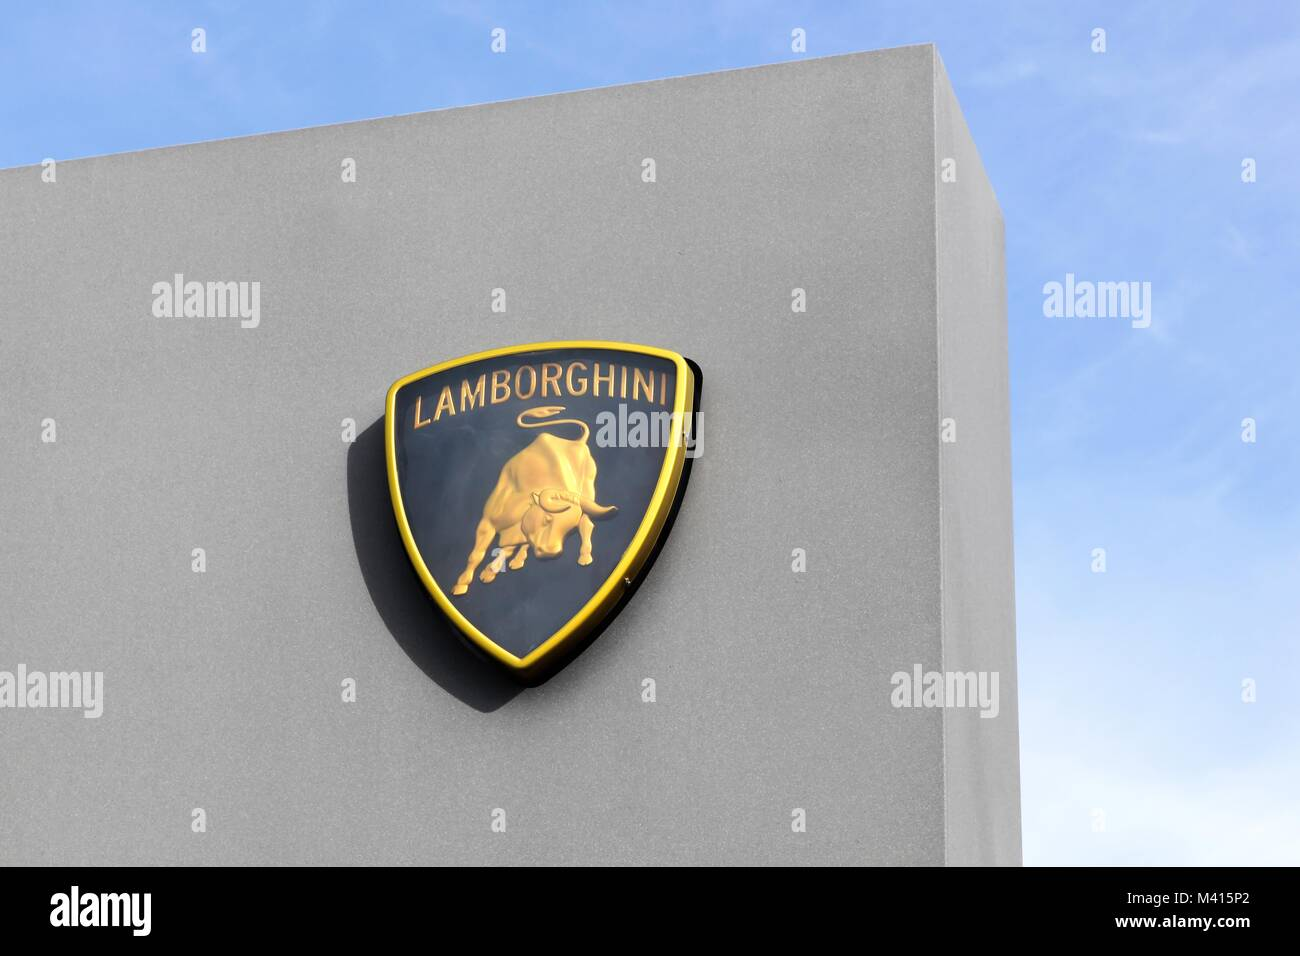 Lamborghini Emblem Stock Photos Lamborghini Emblem Stock Images